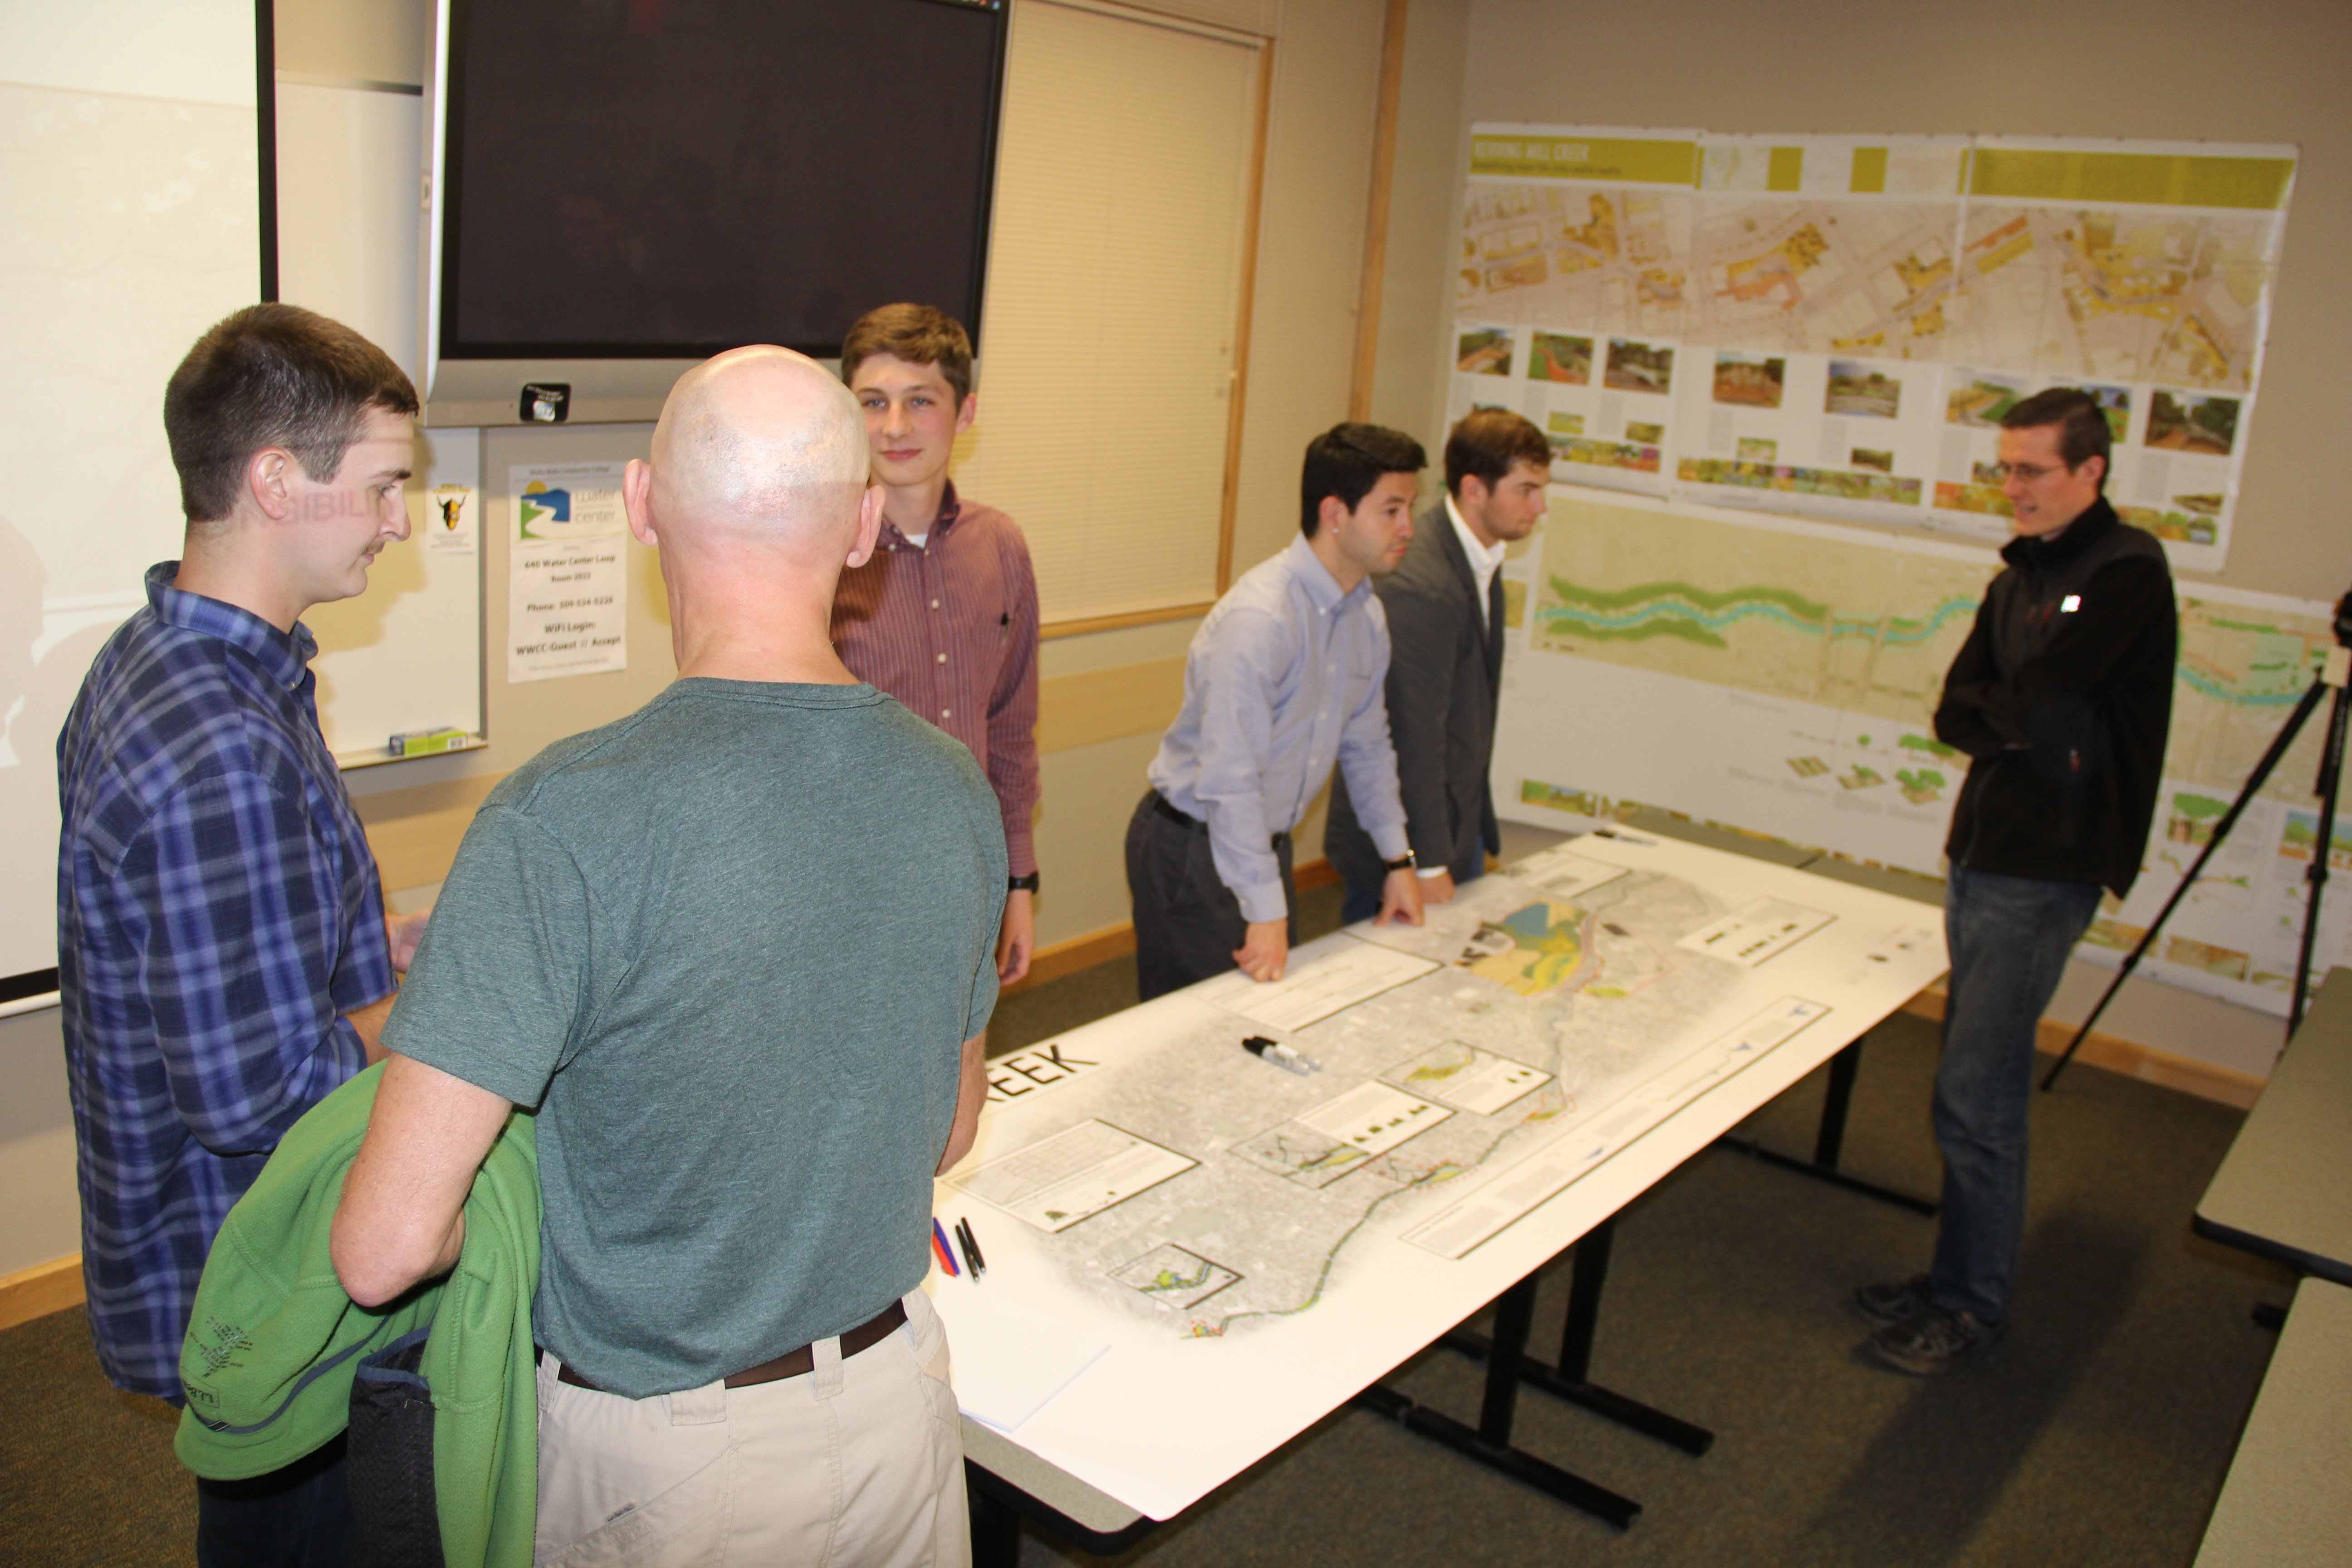 adults looking at large map of Mill Creek